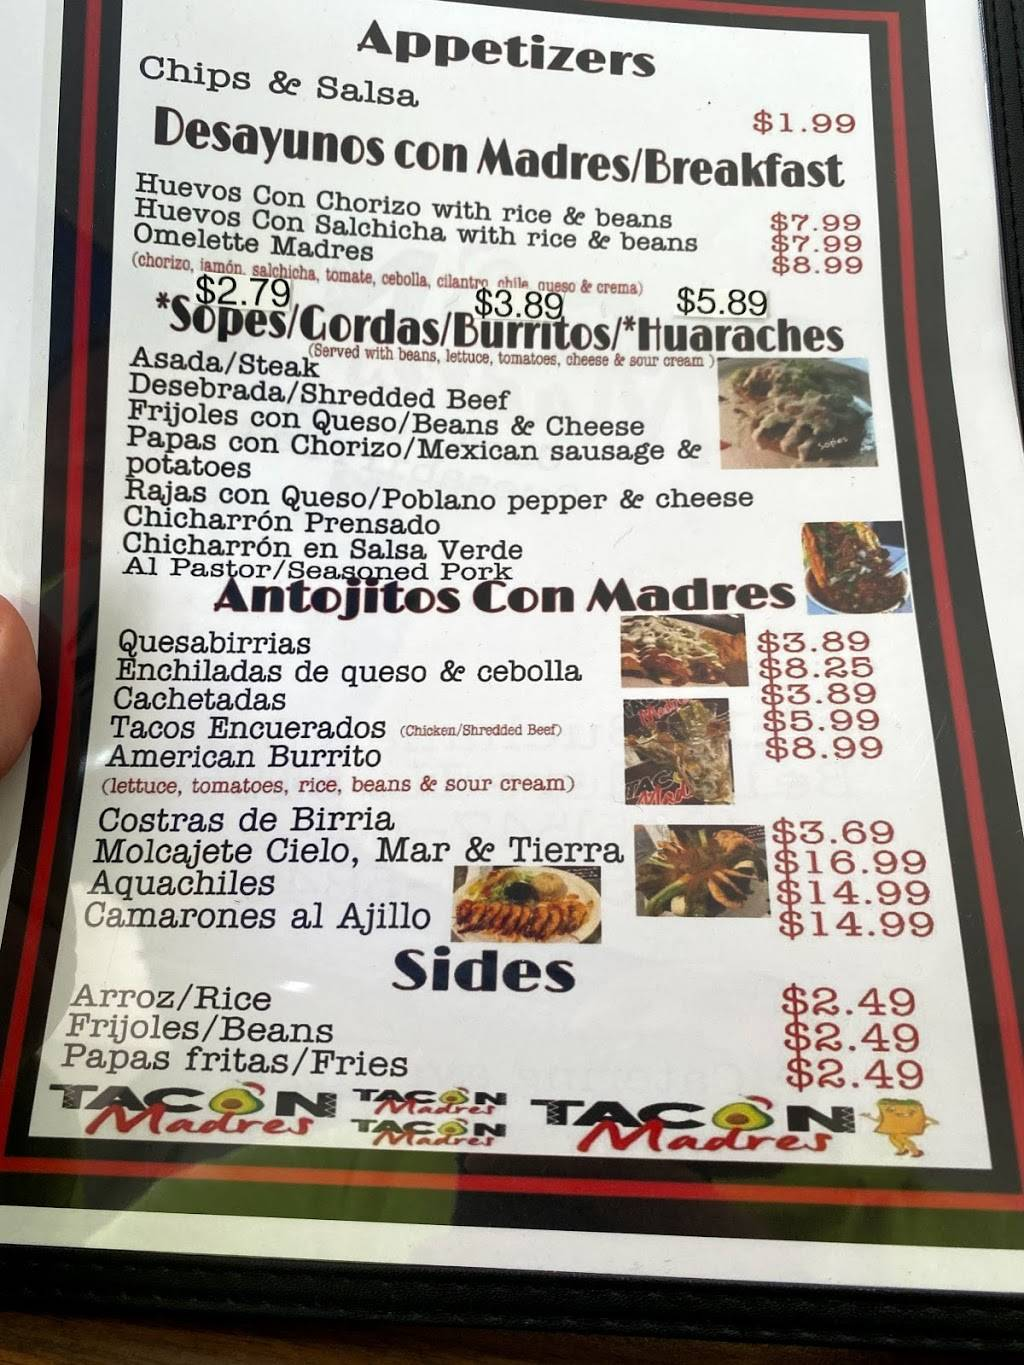 Tacon madres | restaurant | 116 Buchanan St, Belvidere, IL 61008, USA | 8153785381 OR +1 815-378-5381